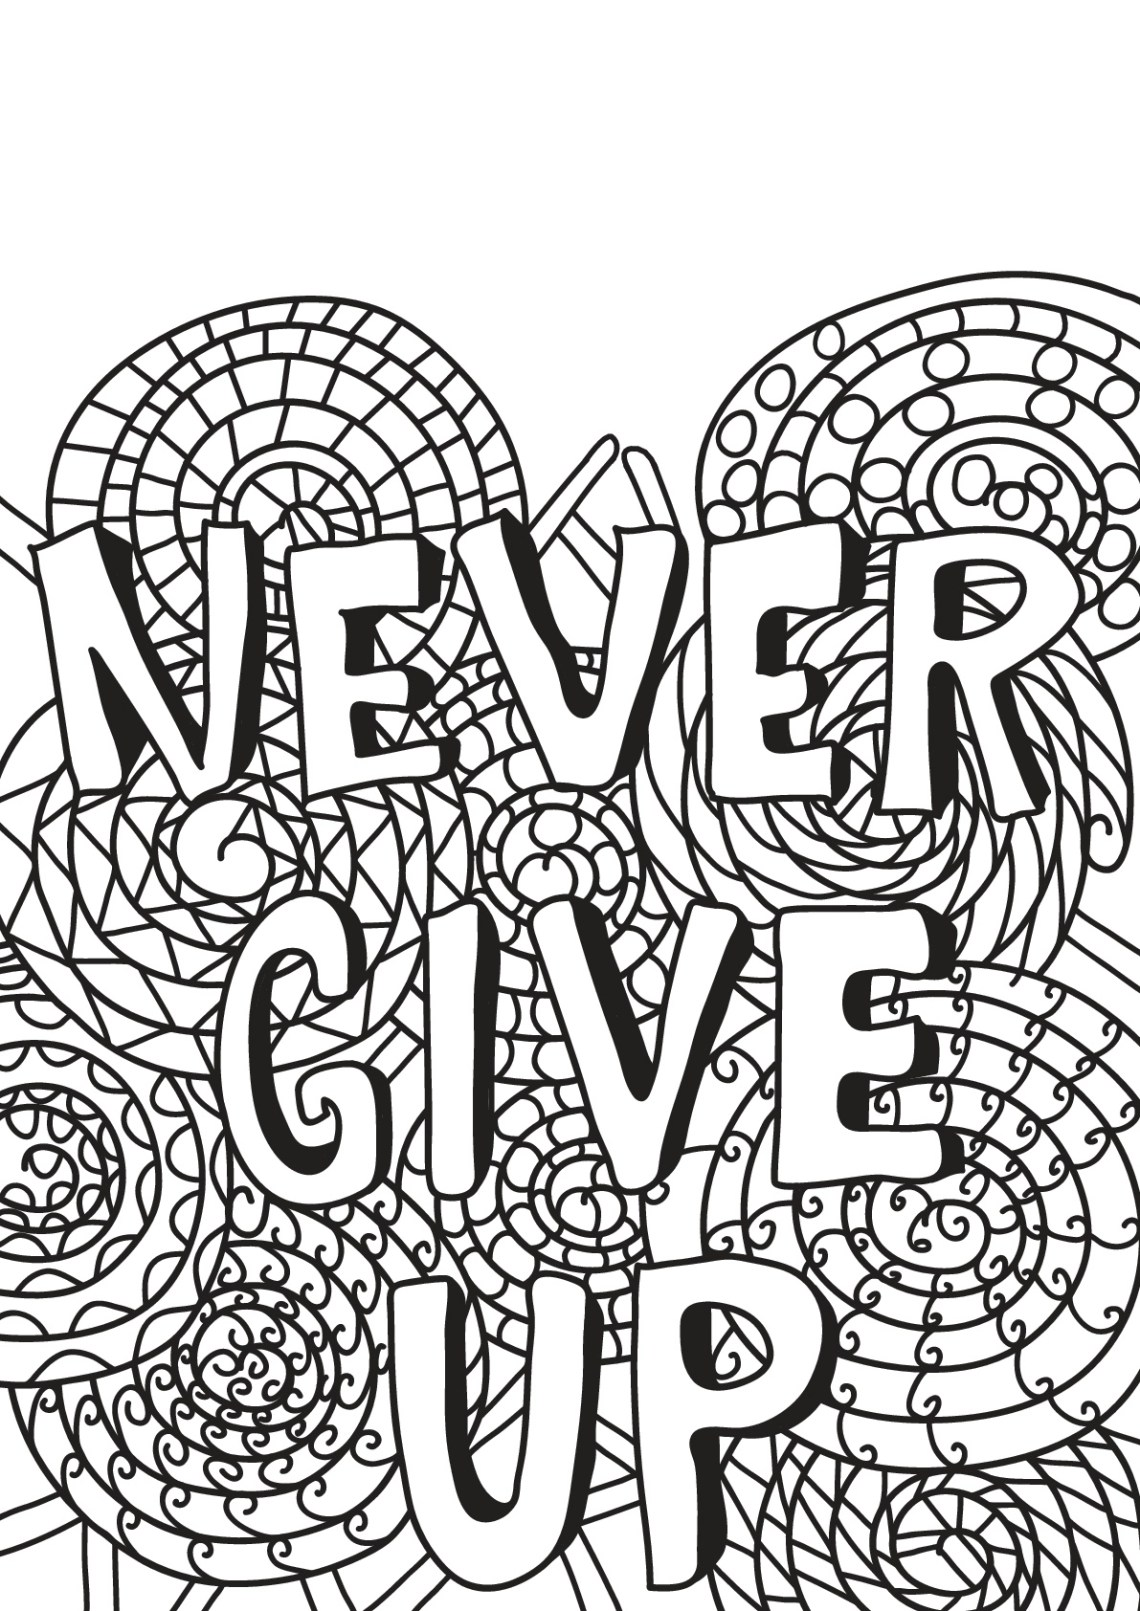 Free book quote 14 - Quotes Adult Coloring Pages | printable coloring sheets with quotes